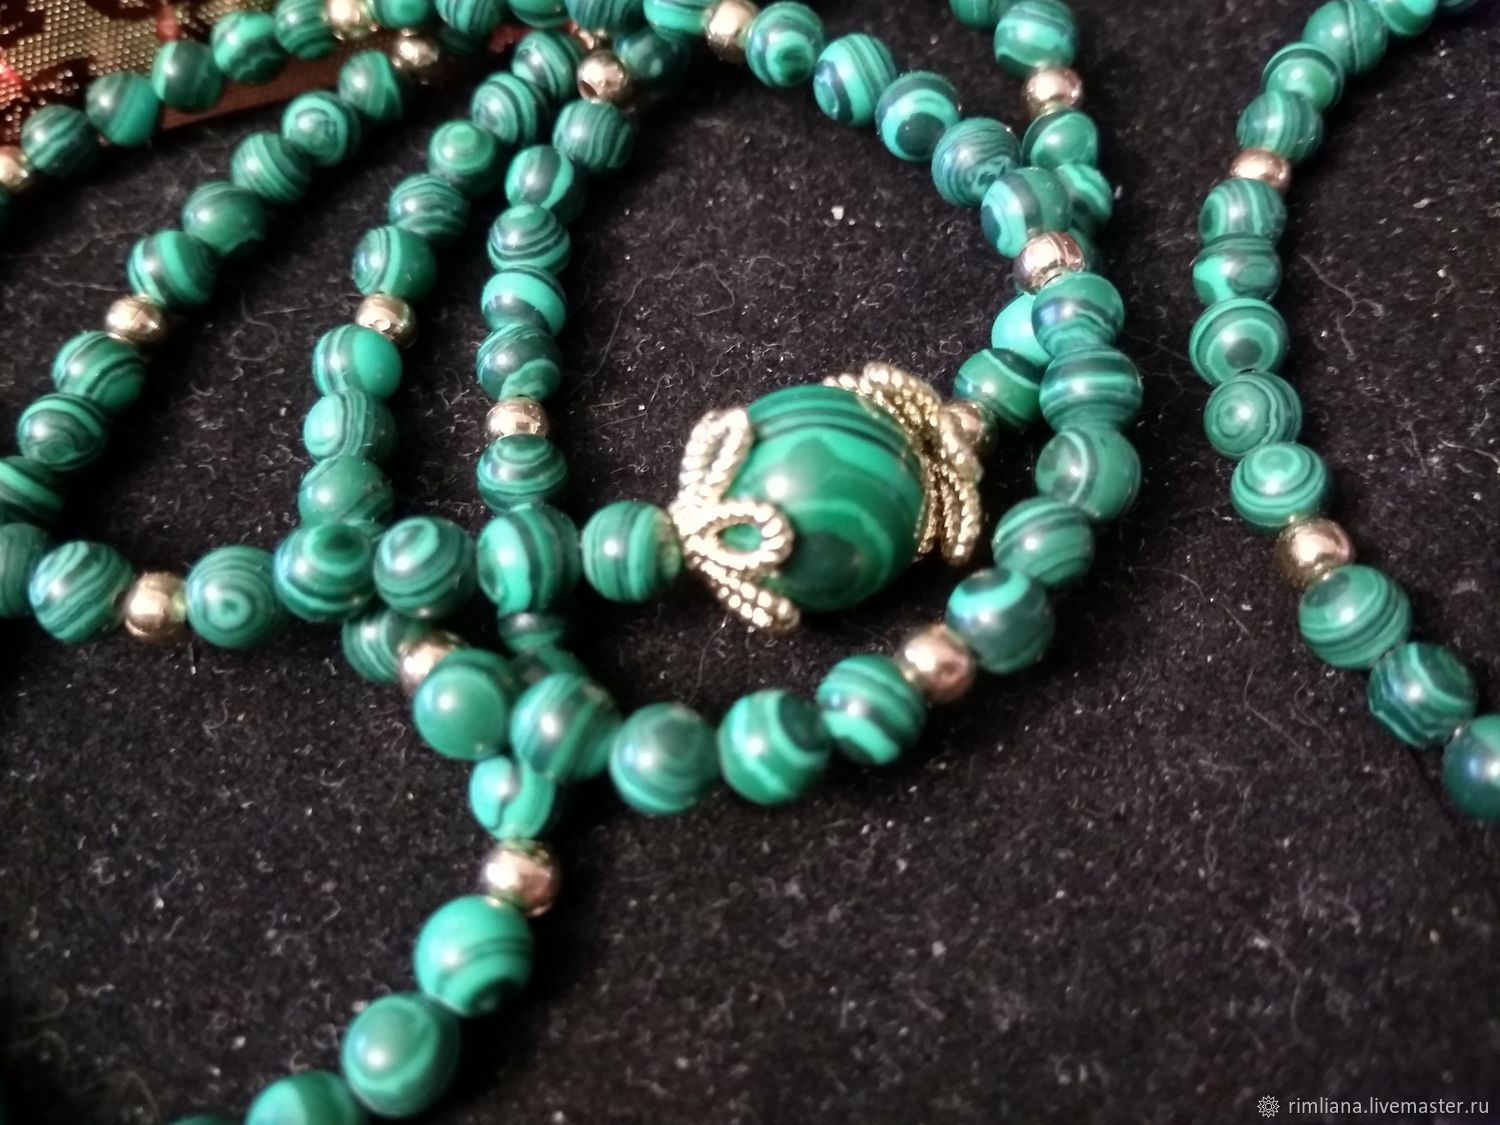 Necklace and bracelet 'Ural green' malachite, Jewelry Sets, Moscow,  Фото №1